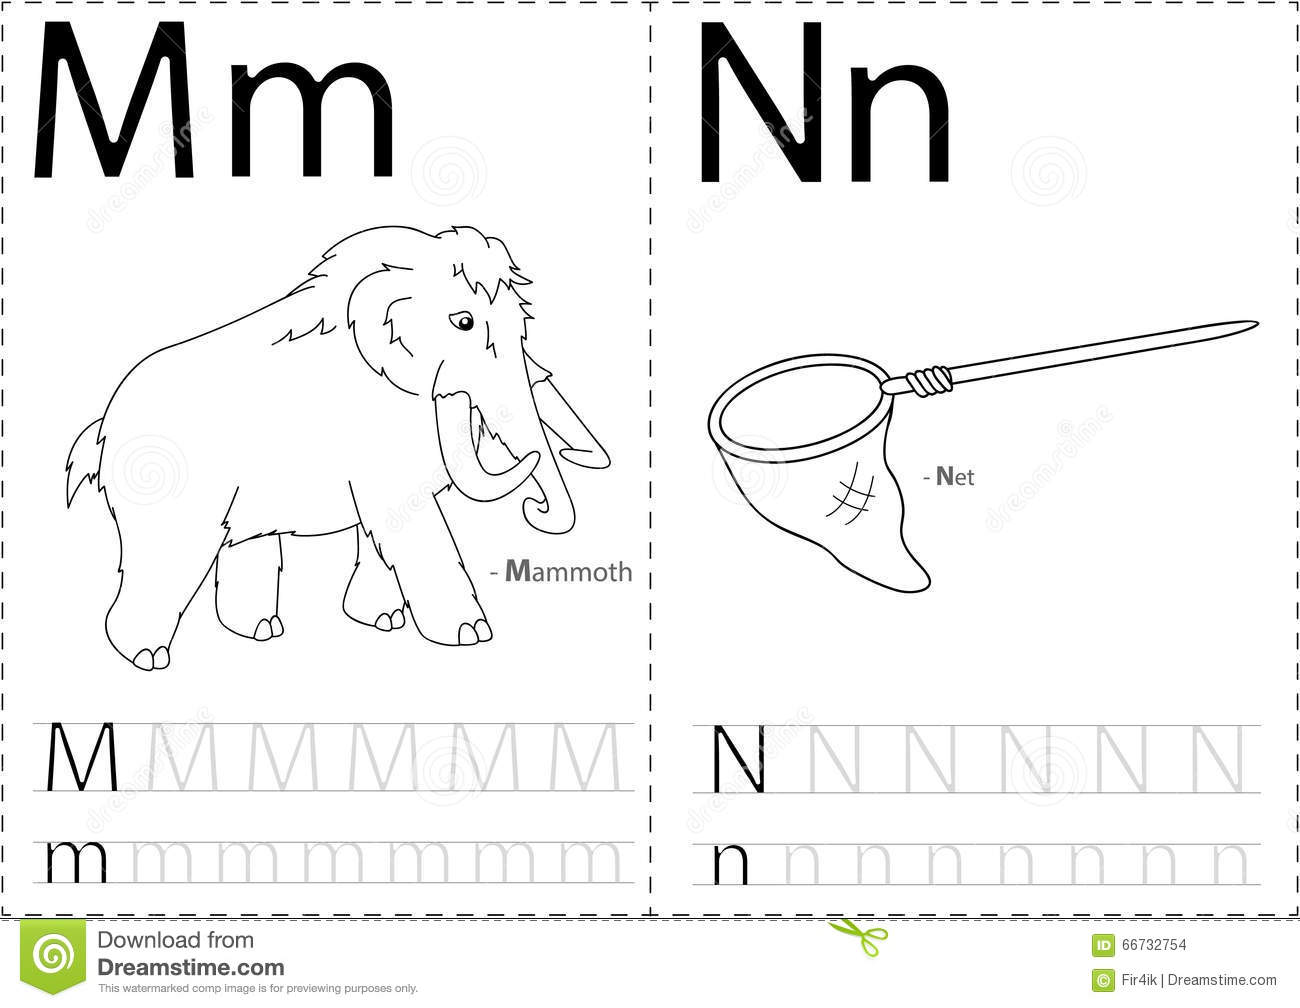 Cartoon Mammoth And Net. Alphabet Tracing Worksheet